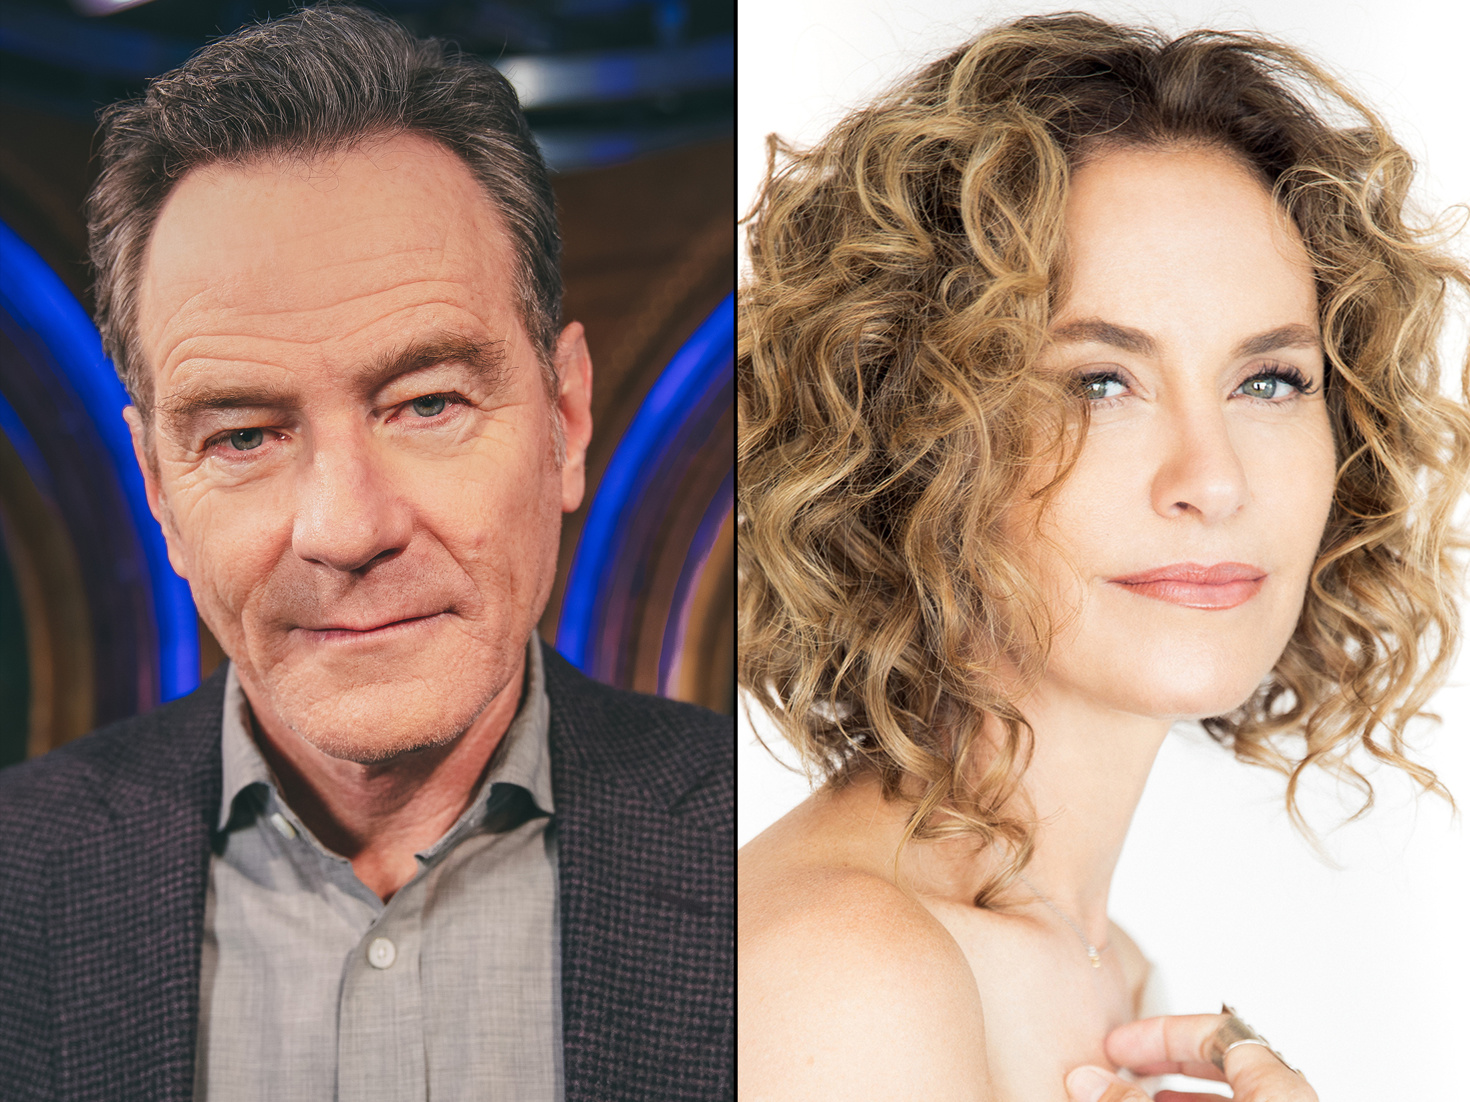 Bryan Cranston & Amy Brenneman to Star in Power of Sail at L.A.'s Geffen Playhouse